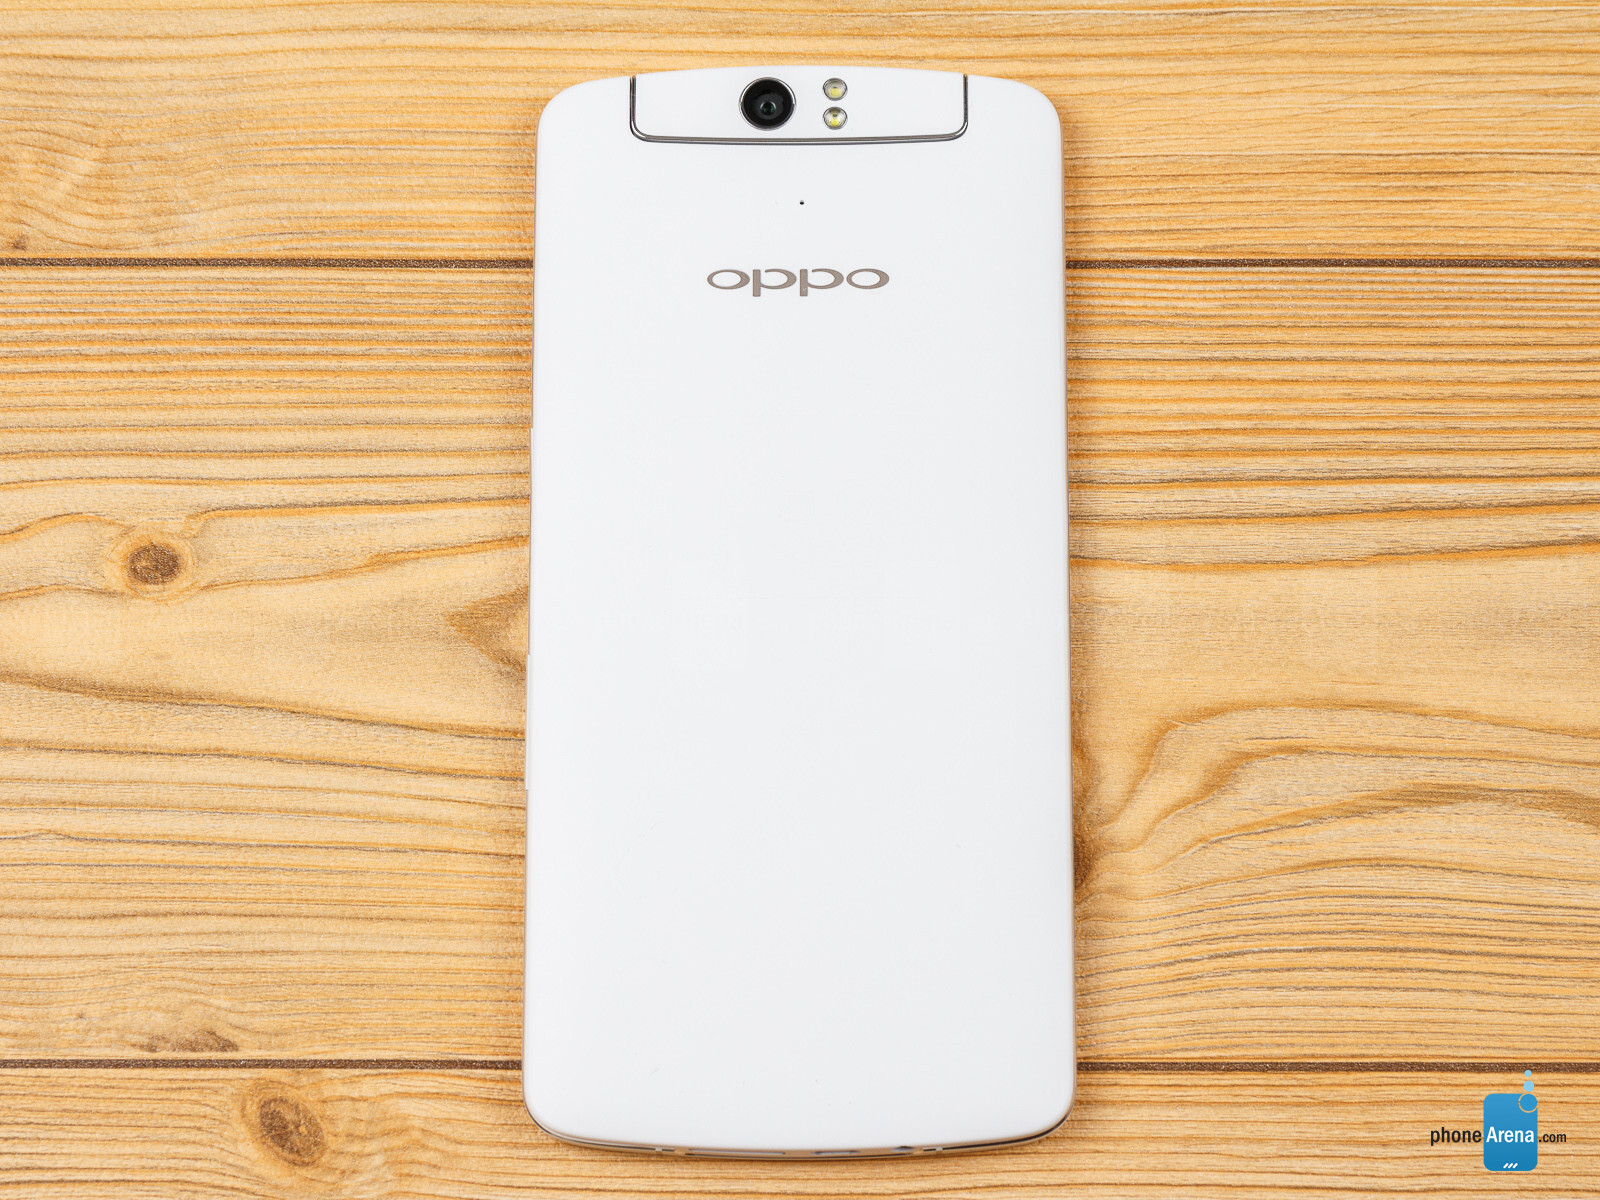 OPPO N1 Review: Huge Phone with Potential